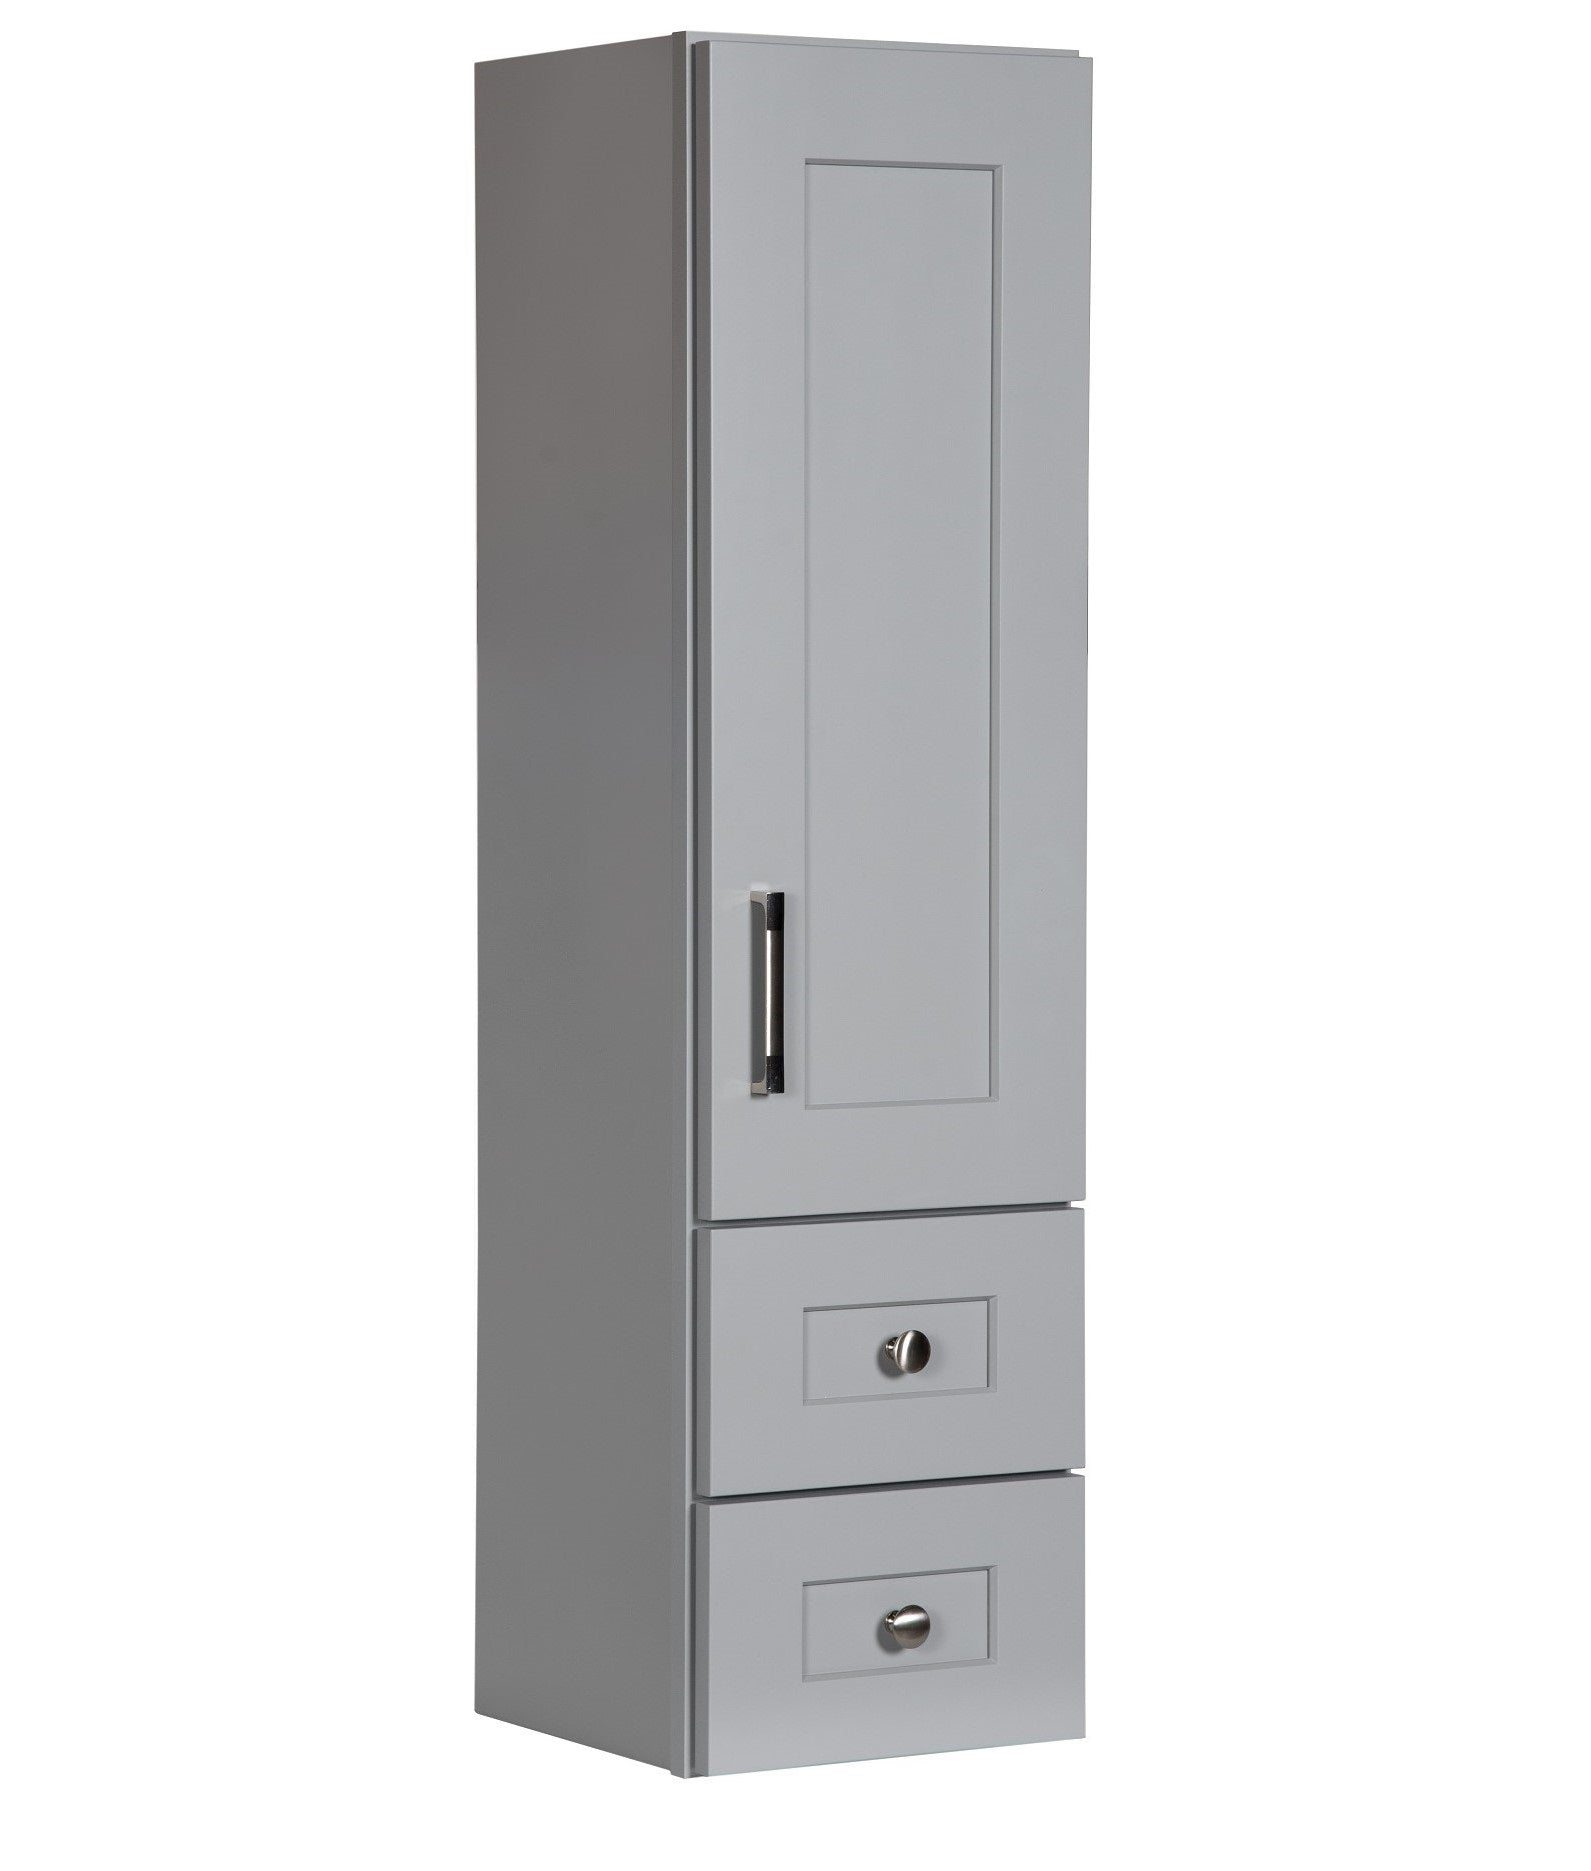 Grey Bathroom Linen Cabinet With Wood Door And Drawers ...